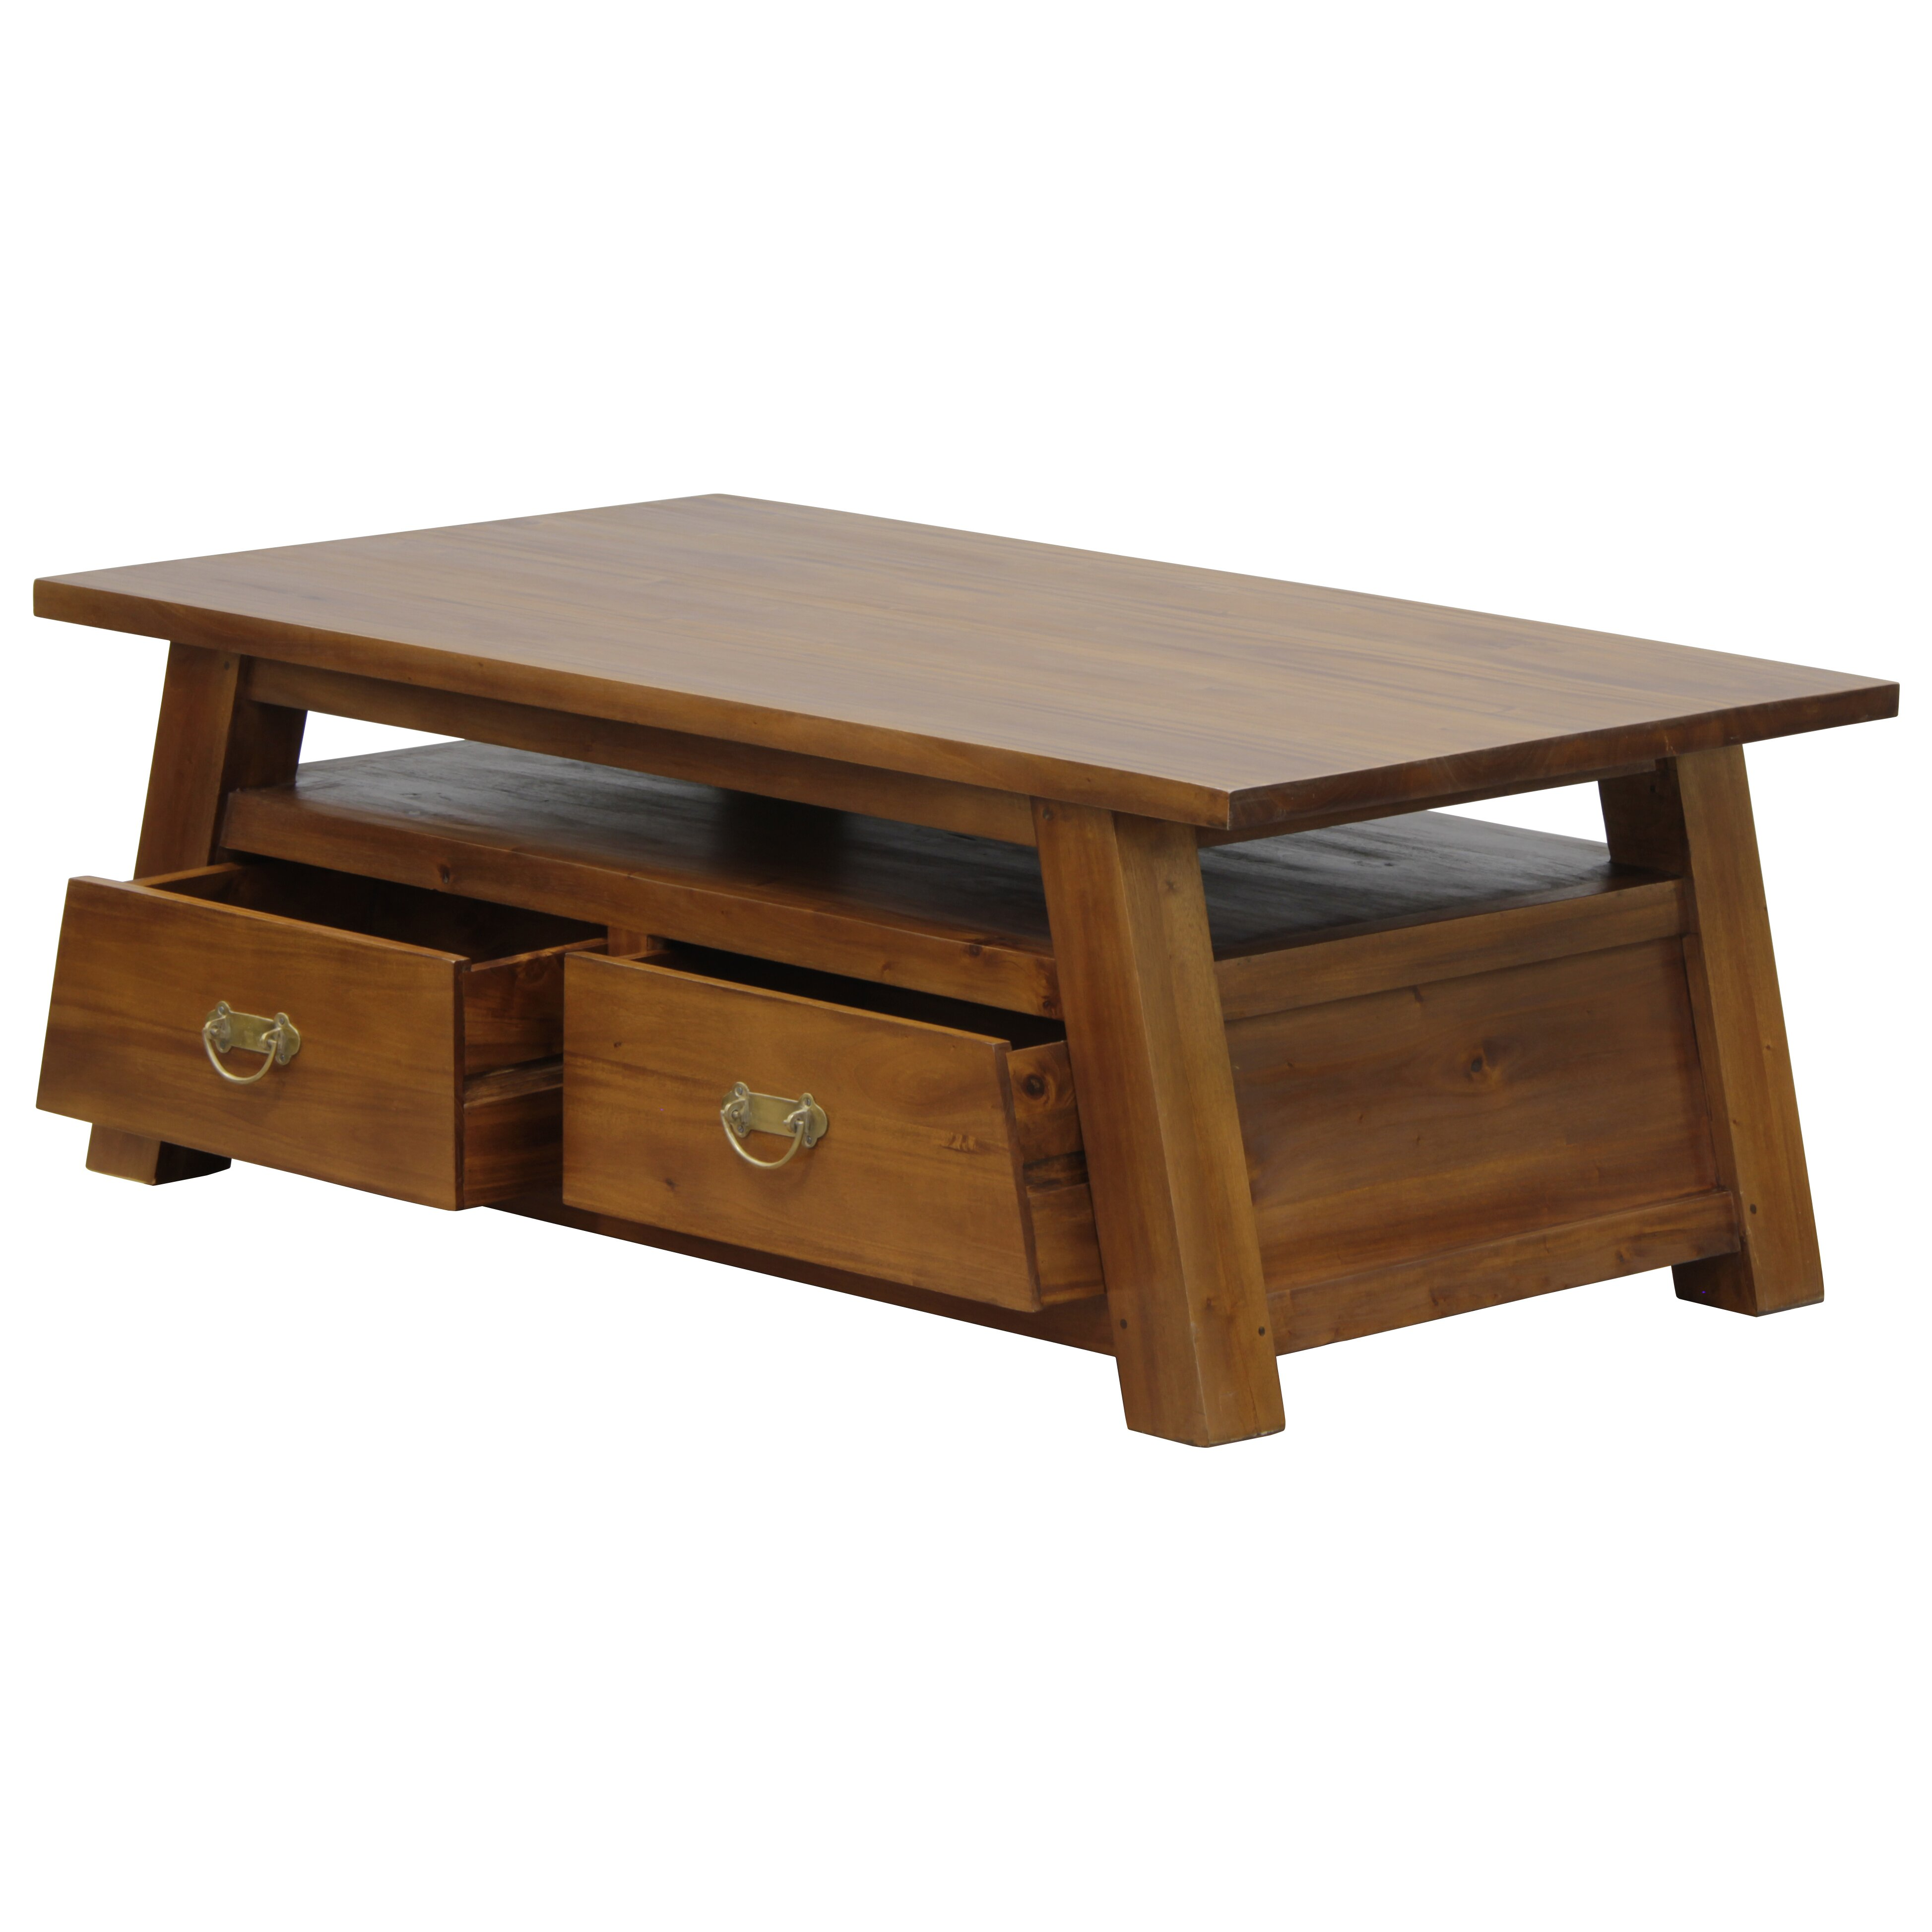 Solid Wood Coffee Table Wayfair: NES Furniture Japanese Fine Handcrafted Solid Mahogany